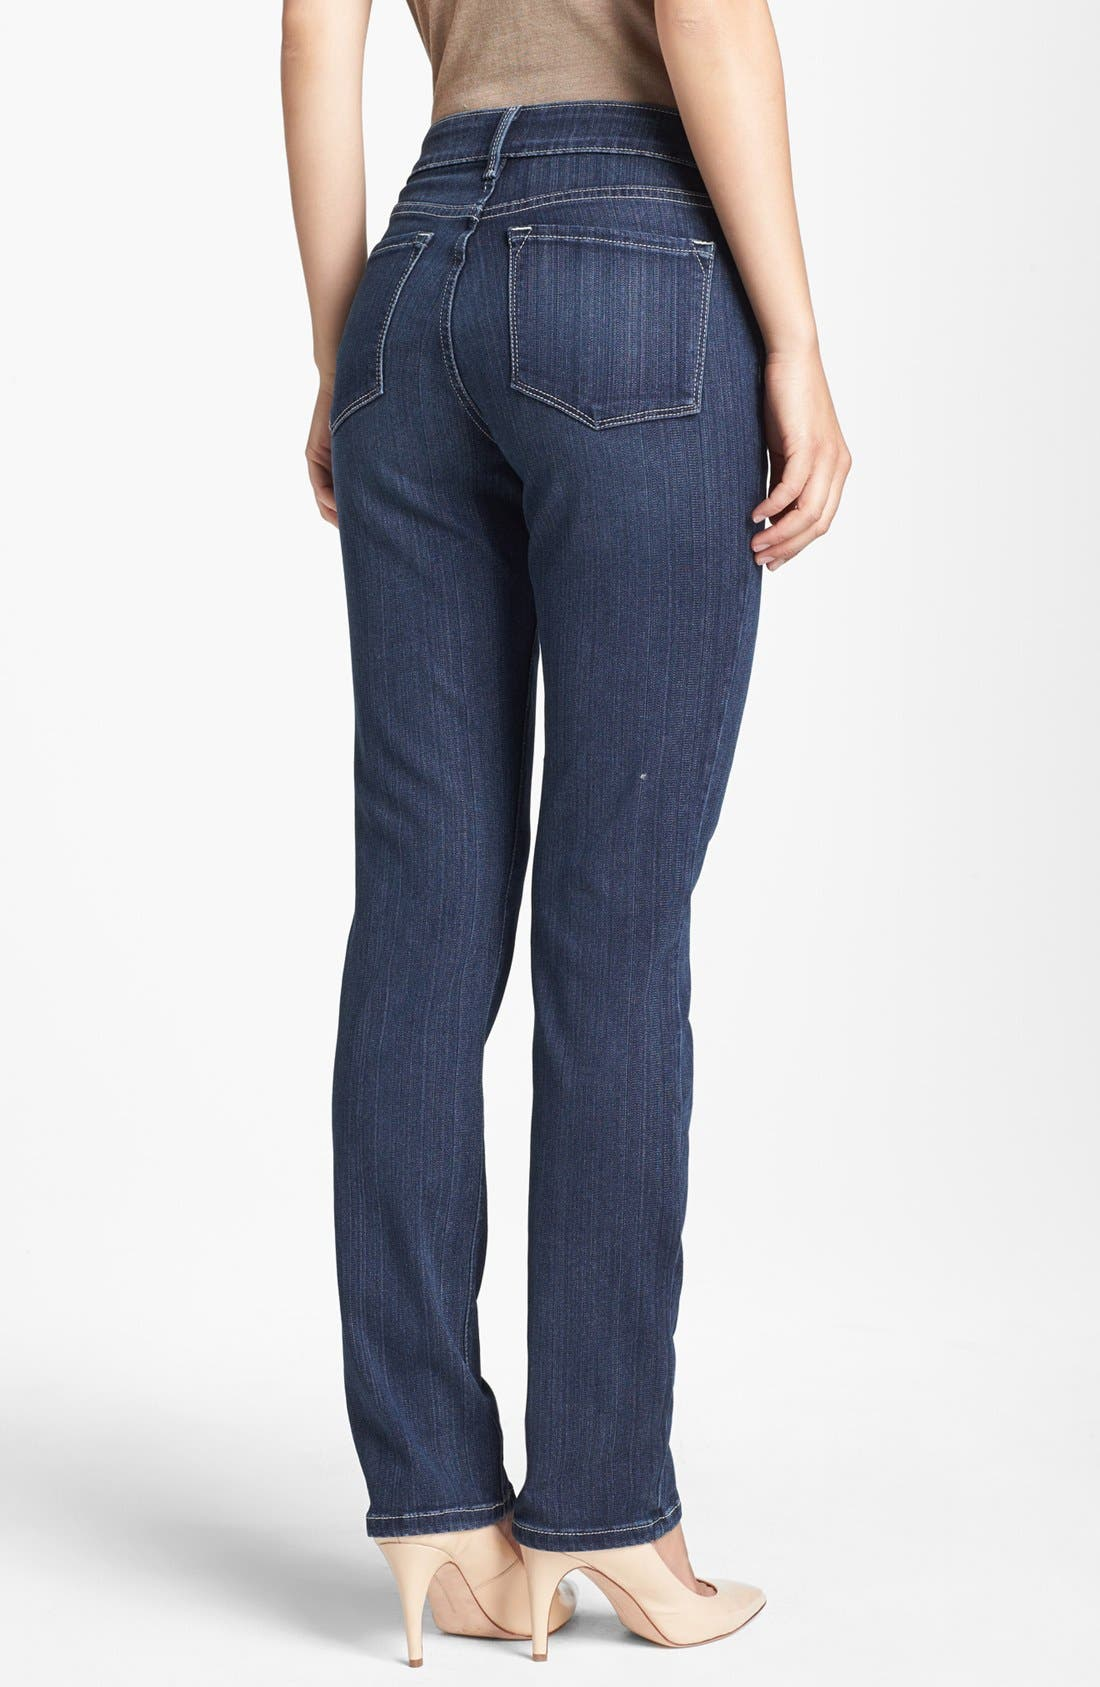 Alternate Image 2  - NYDJ 'Sheri' Stretch Skinny Jeans (Regular & Petite)